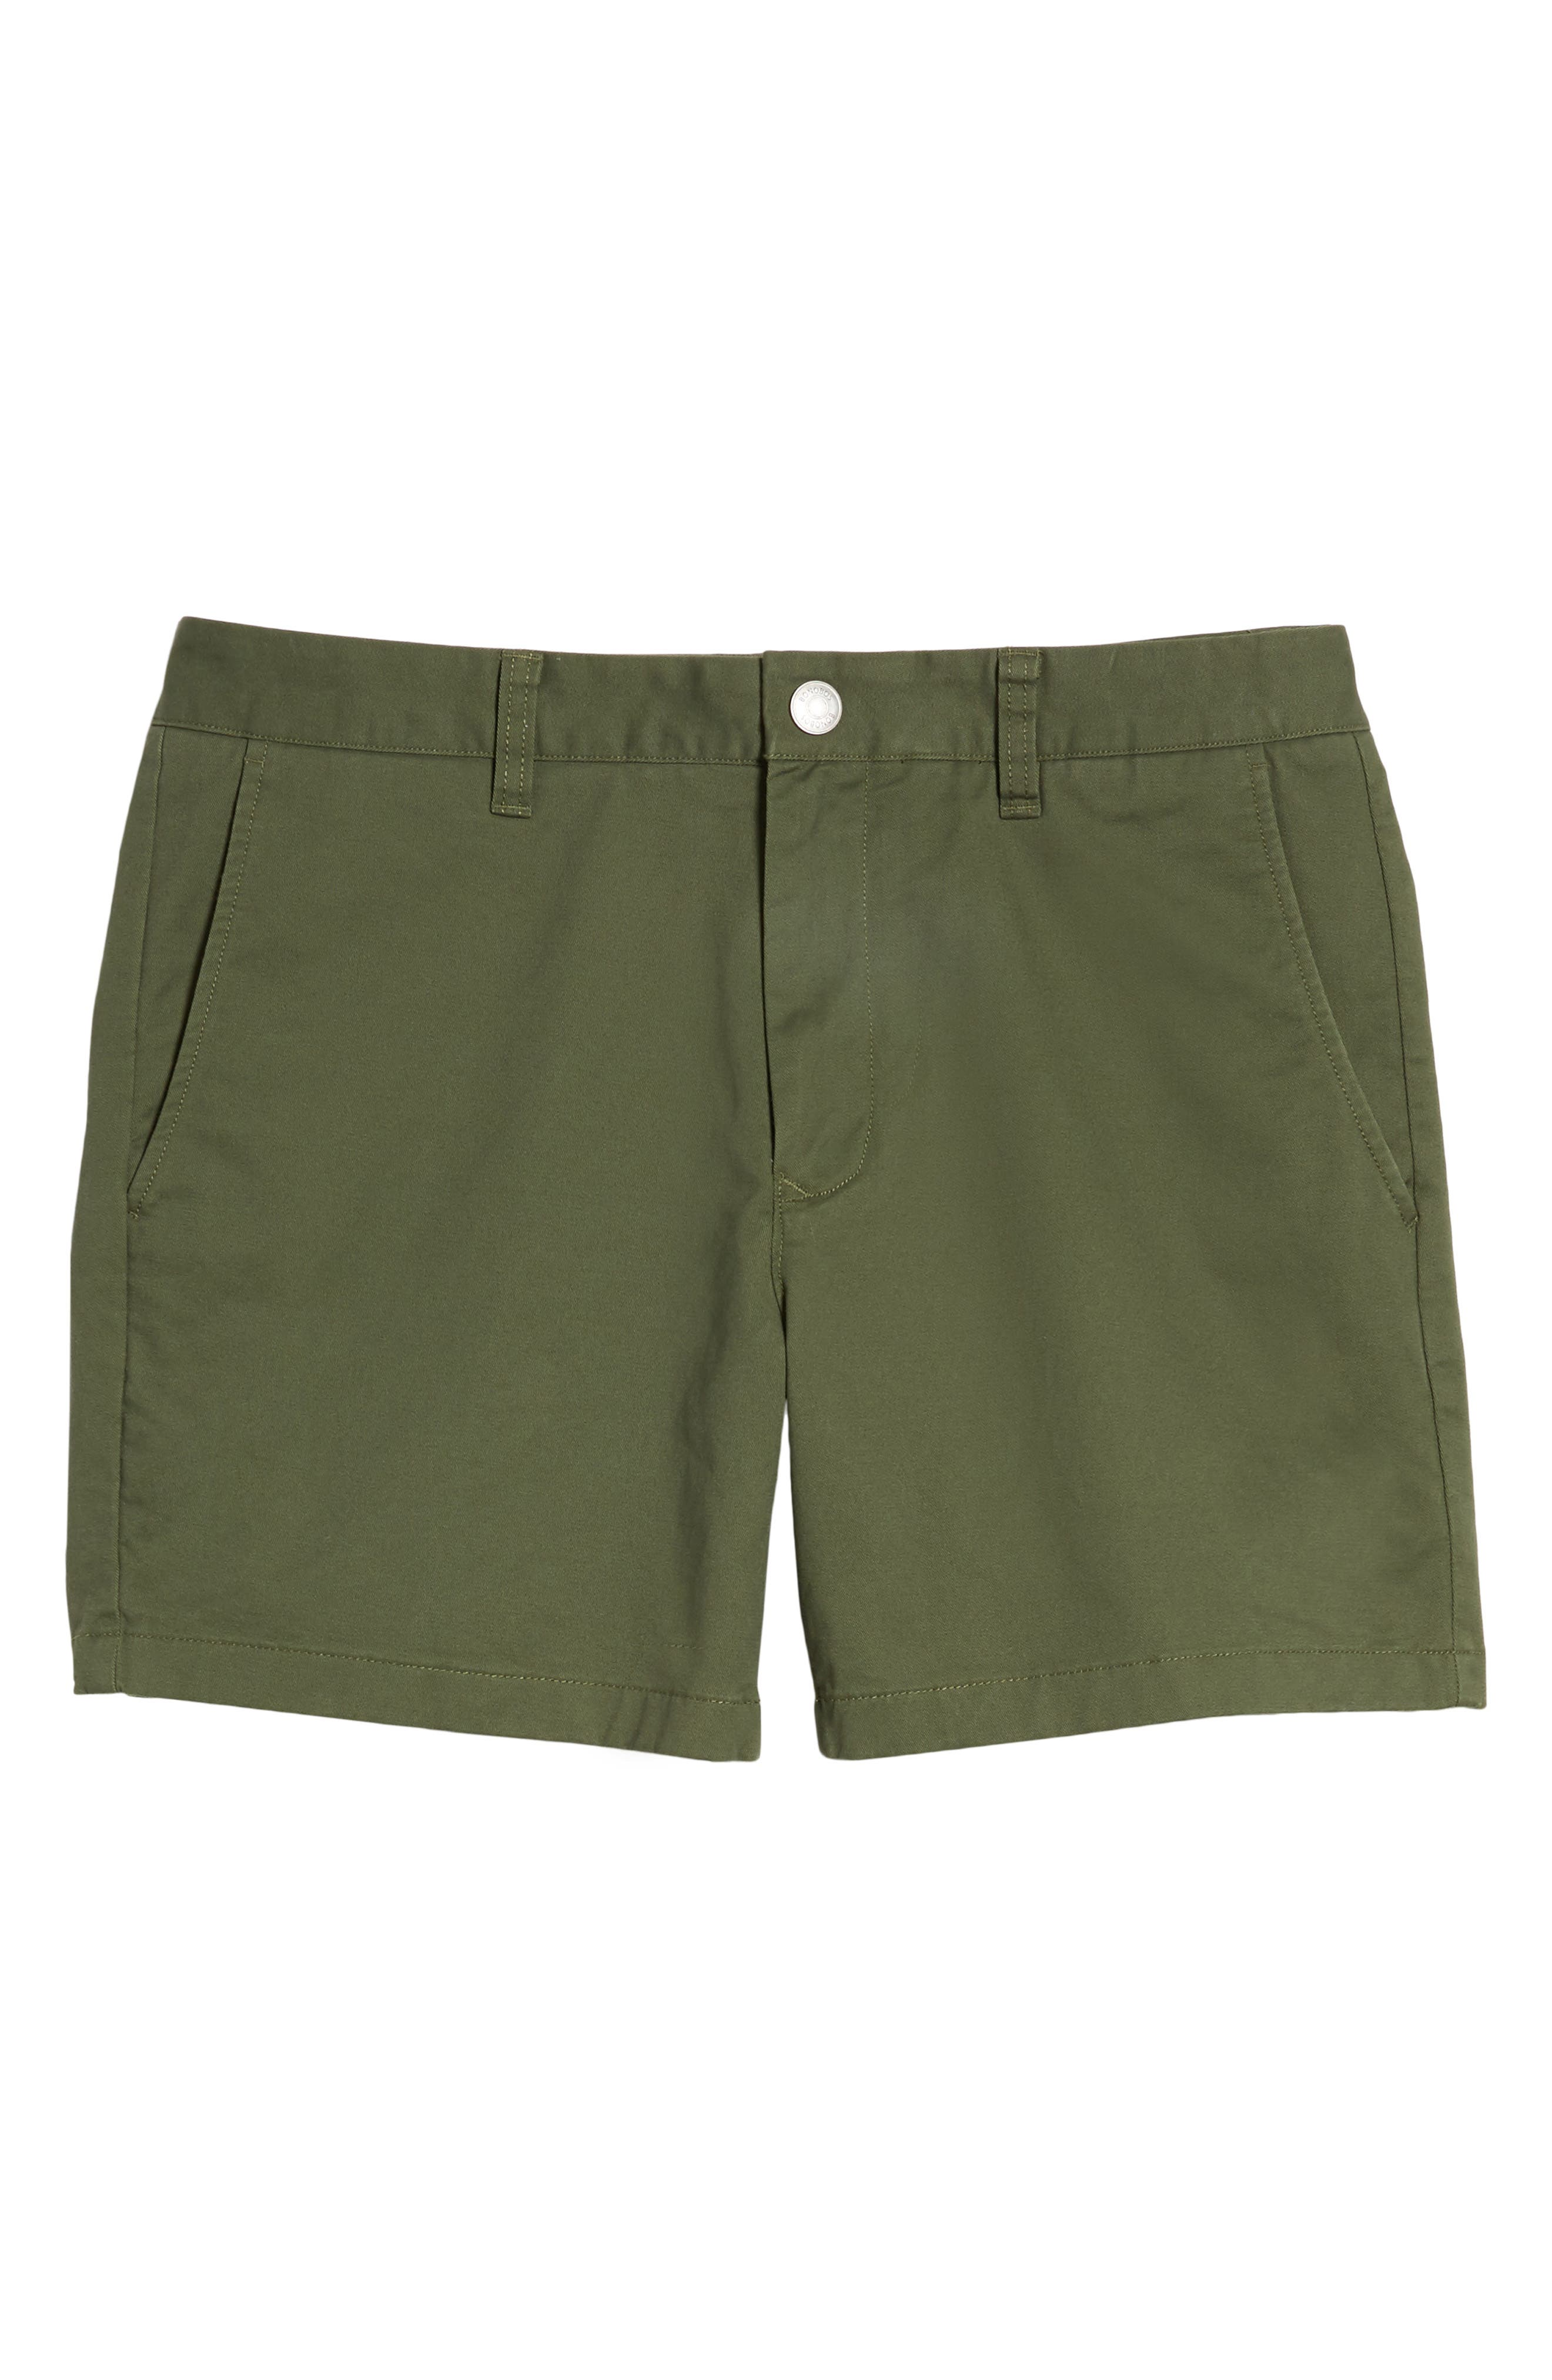 Stretch Washed Chino 5-Inch Shorts,                             Alternate thumbnail 145, color,